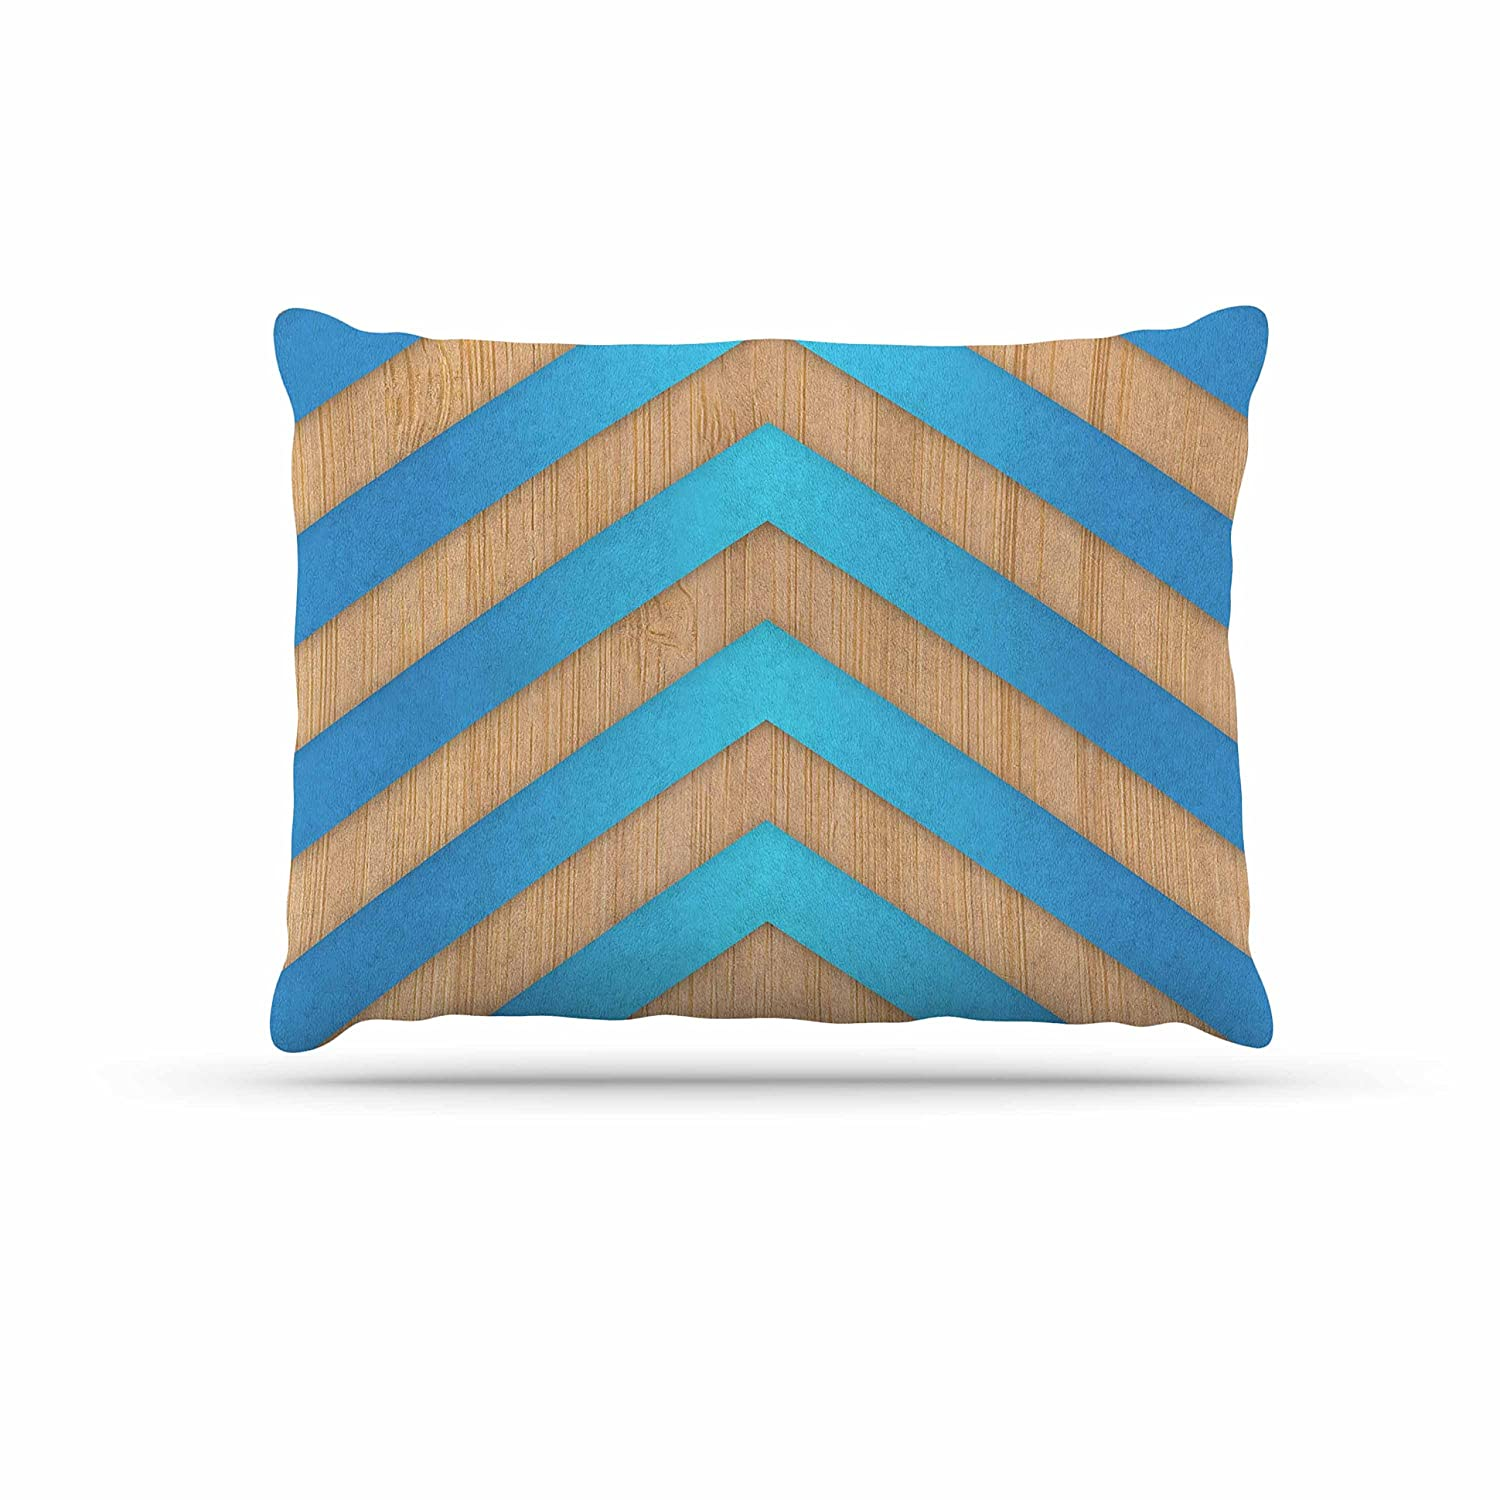 KESS InHouse Marta Olga Klara Turquoise Chevron bluee Brown Dog Bed, 30  x 40